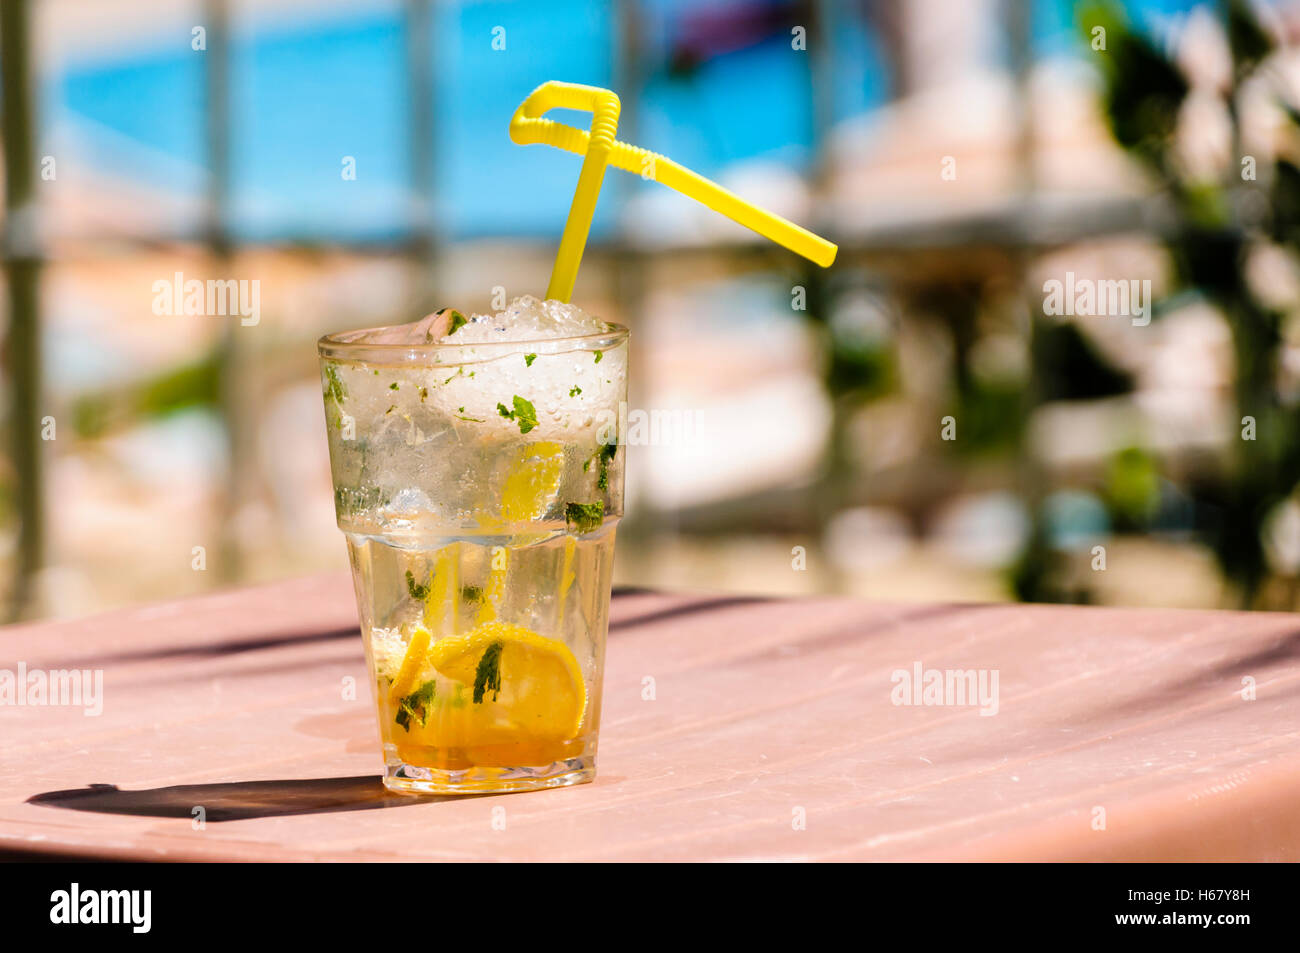 Mojito with yellow straw on the table of a hotel in bright sunlight while on holiday - Stock Image